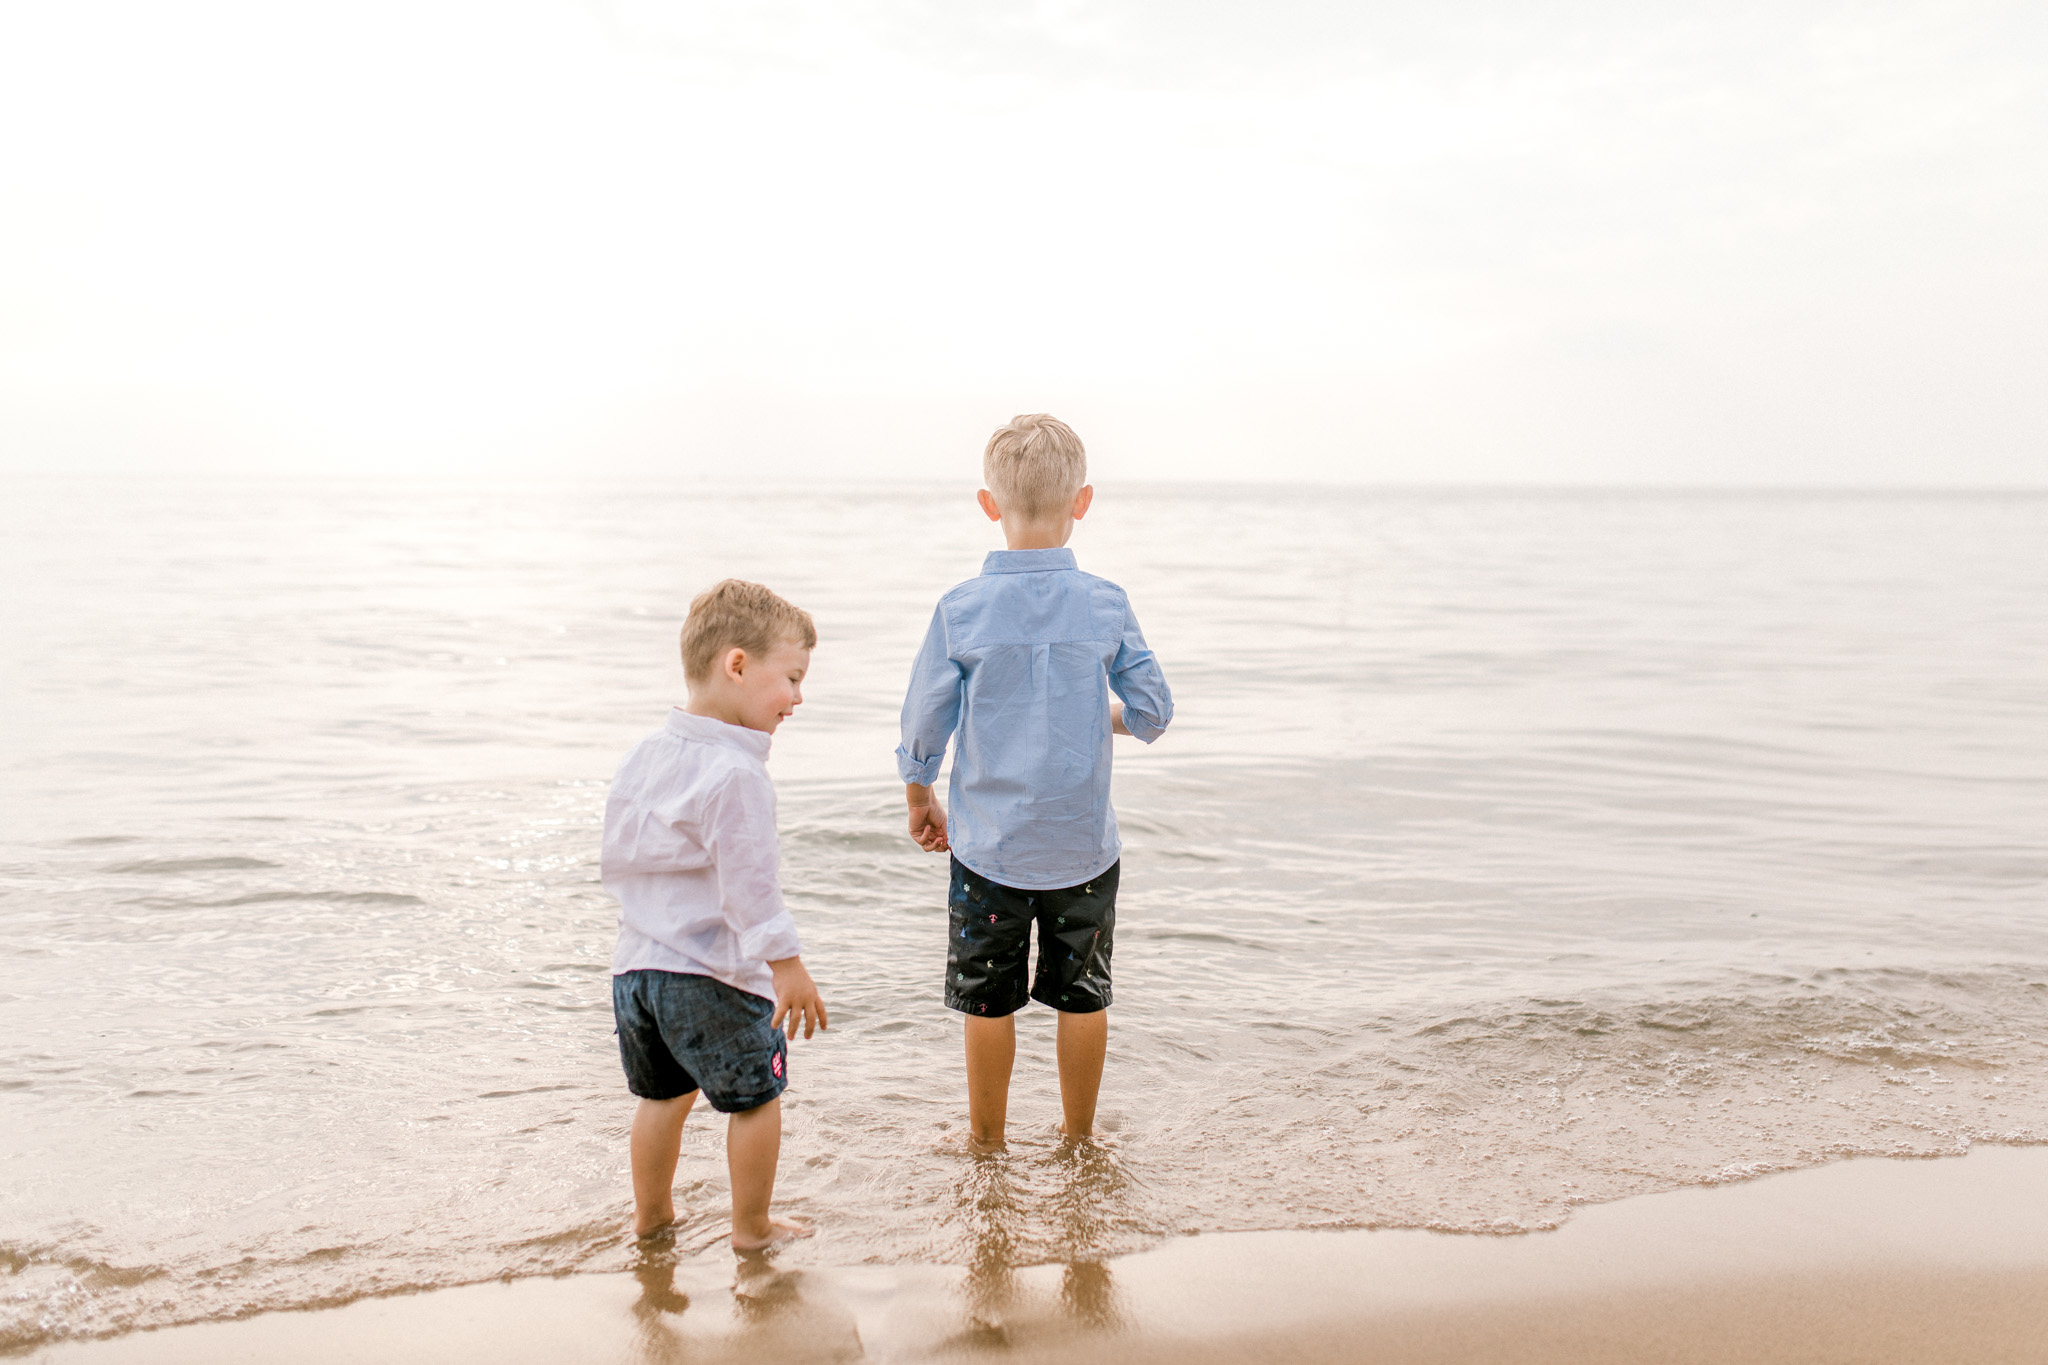 Family Lifestyle Session on the Beach | Family Photographer | West Olive, Michigan